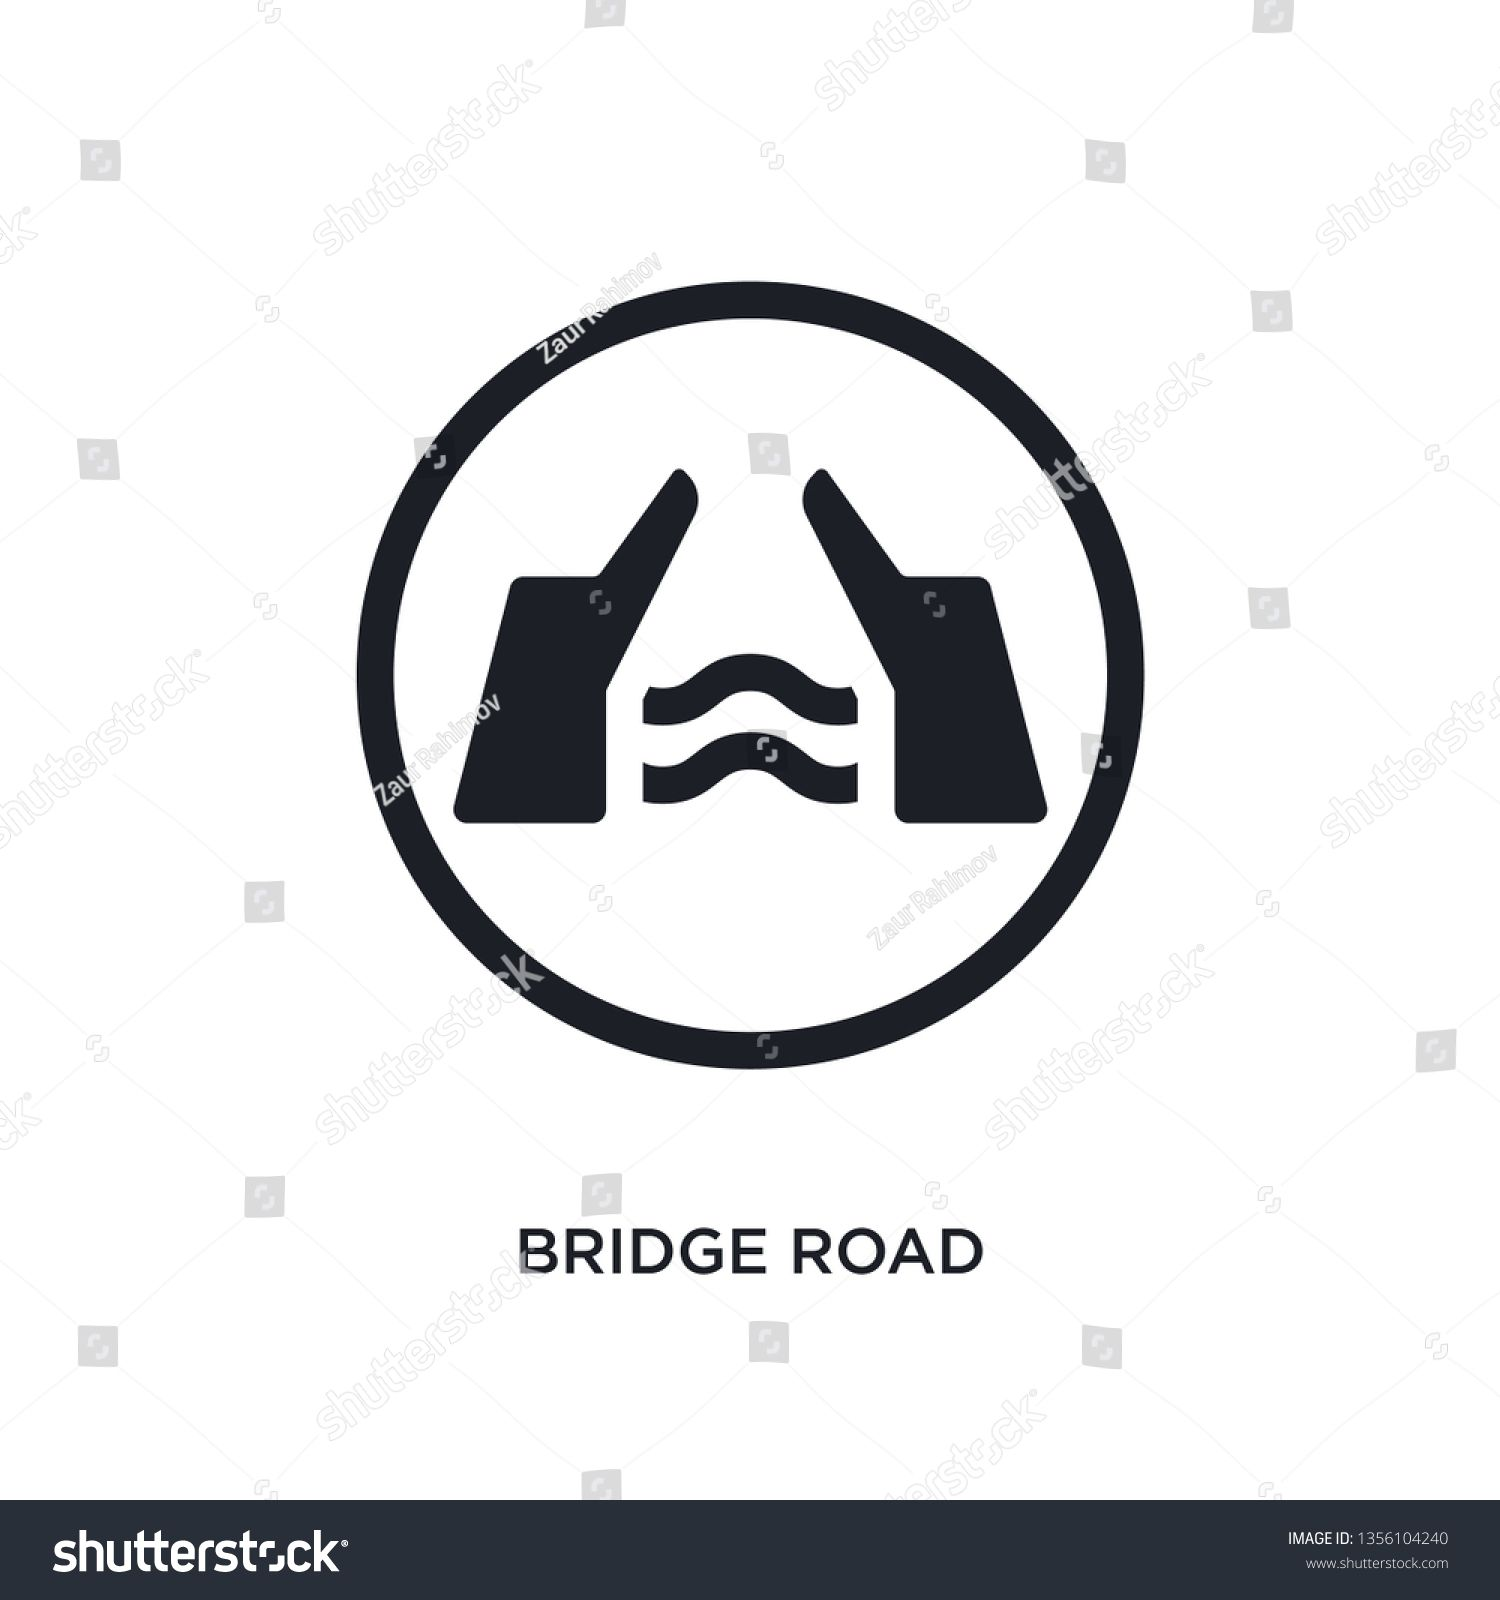 black bridge road isolated vector icon simple element illustration from traffic signs concept vector icons bridge road editable logo symbol design on white background can...